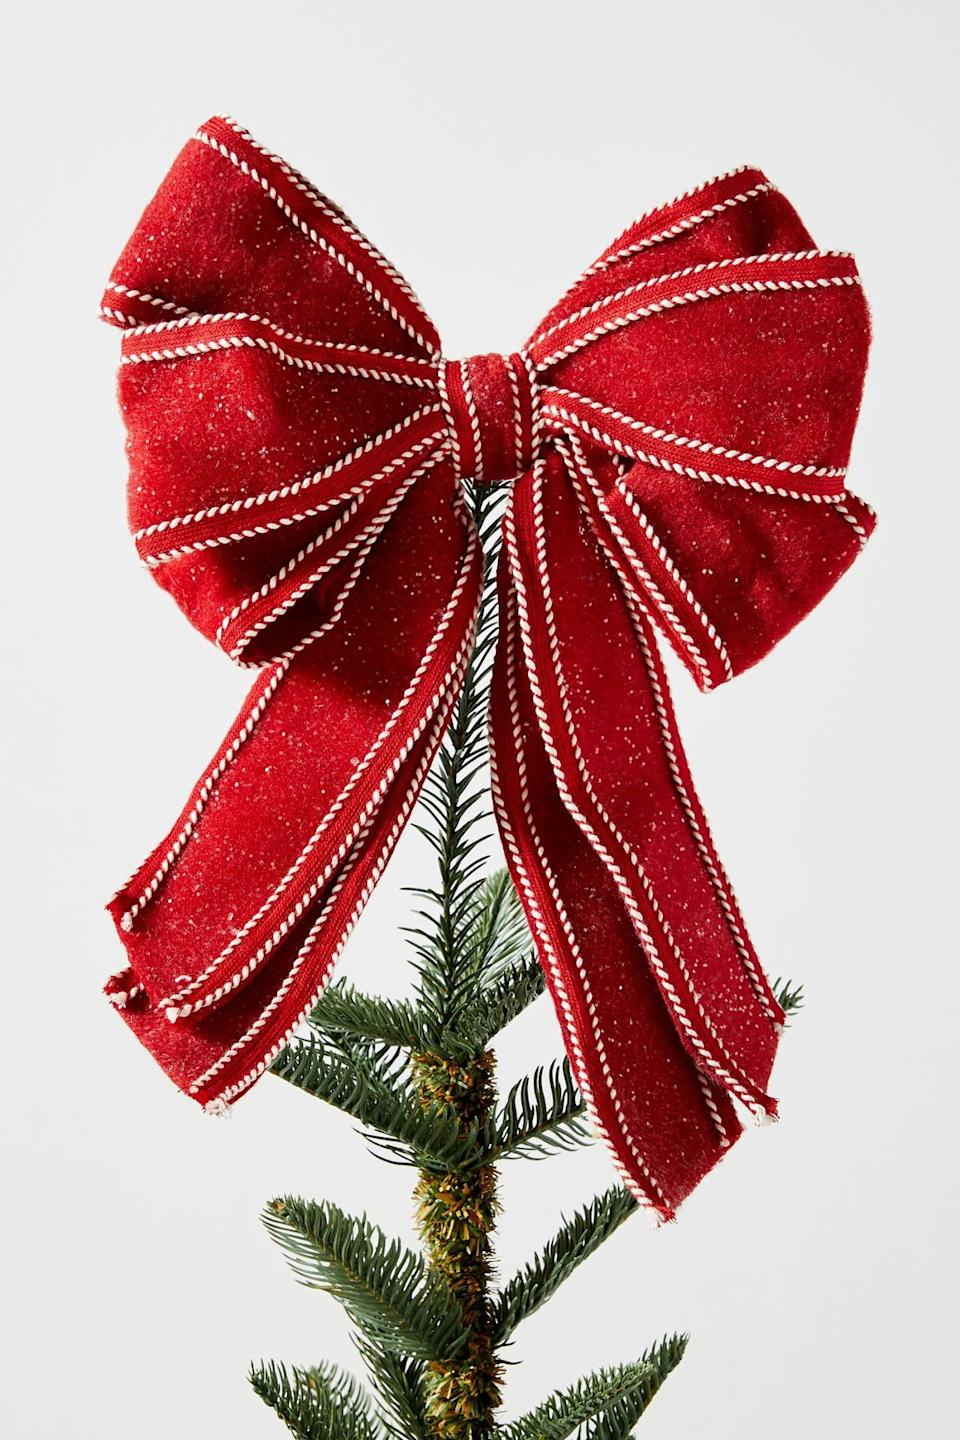 """<p>Make your tree look like a freshly wrapped present with the <a href=""""https://www.popsugar.com/buy/Red-Bow-Tree-Topper-490536?p_name=Red%20Bow%20Tree%20Topper&retailer=anthropologie.com&pid=490536&price=20&evar1=casa%3Aus&evar9=46615300&evar98=https%3A%2F%2Fwww.popsugar.com%2Fhome%2Fphoto-gallery%2F46615300%2Fimage%2F46615407%2FRed-Bow-Tree-Topper&list1=shopping%2Canthropologie%2Choliday%2Cchristmas%2Cchristmas%20decorations%2Choliday%20decor%2Chome%20shopping&prop13=mobile&pdata=1"""" rel=""""nofollow noopener"""" class=""""link rapid-noclick-resp"""" target=""""_blank"""" data-ylk=""""slk:Red Bow Tree Topper"""">Red Bow Tree Topper</a> ($20).</p>"""